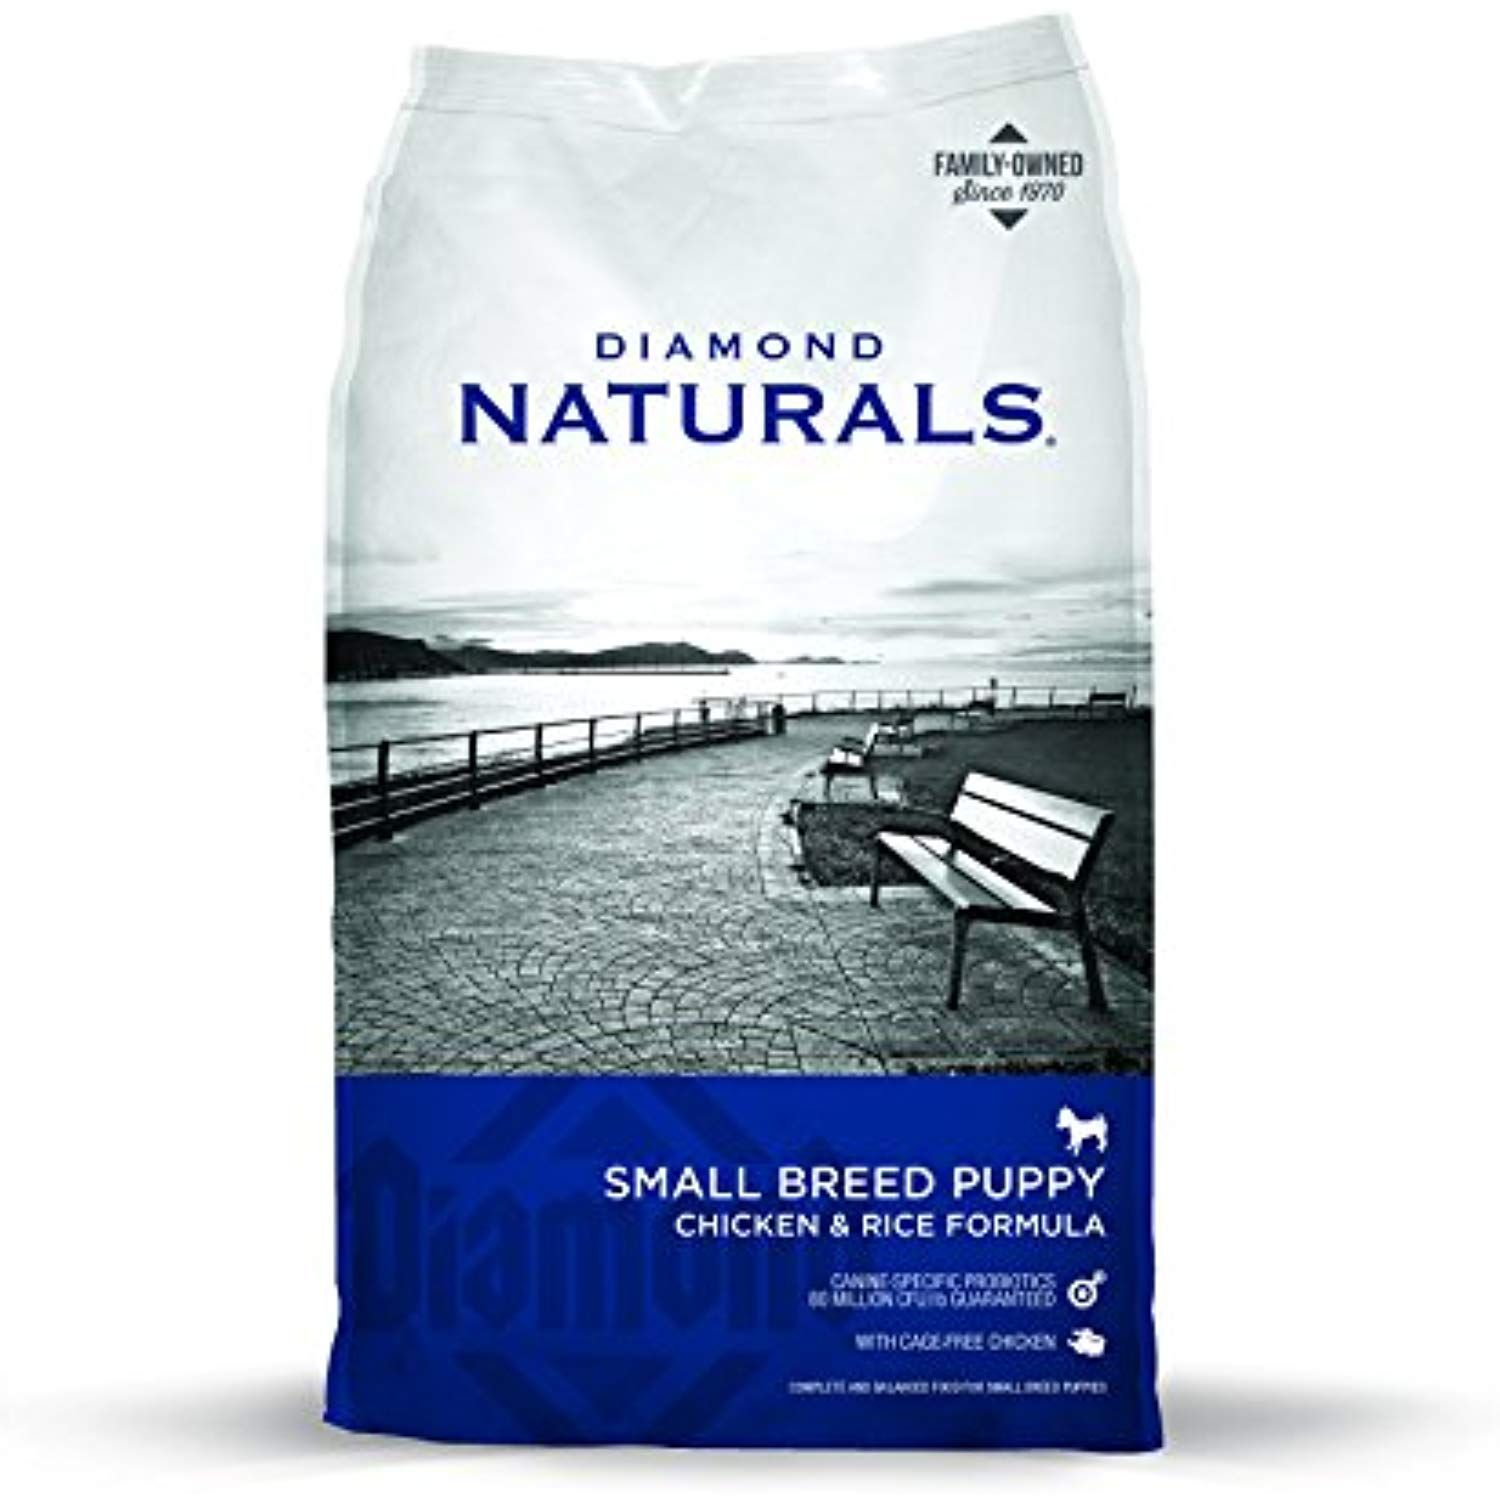 Diamond naturals small breed puppy real meat recipe